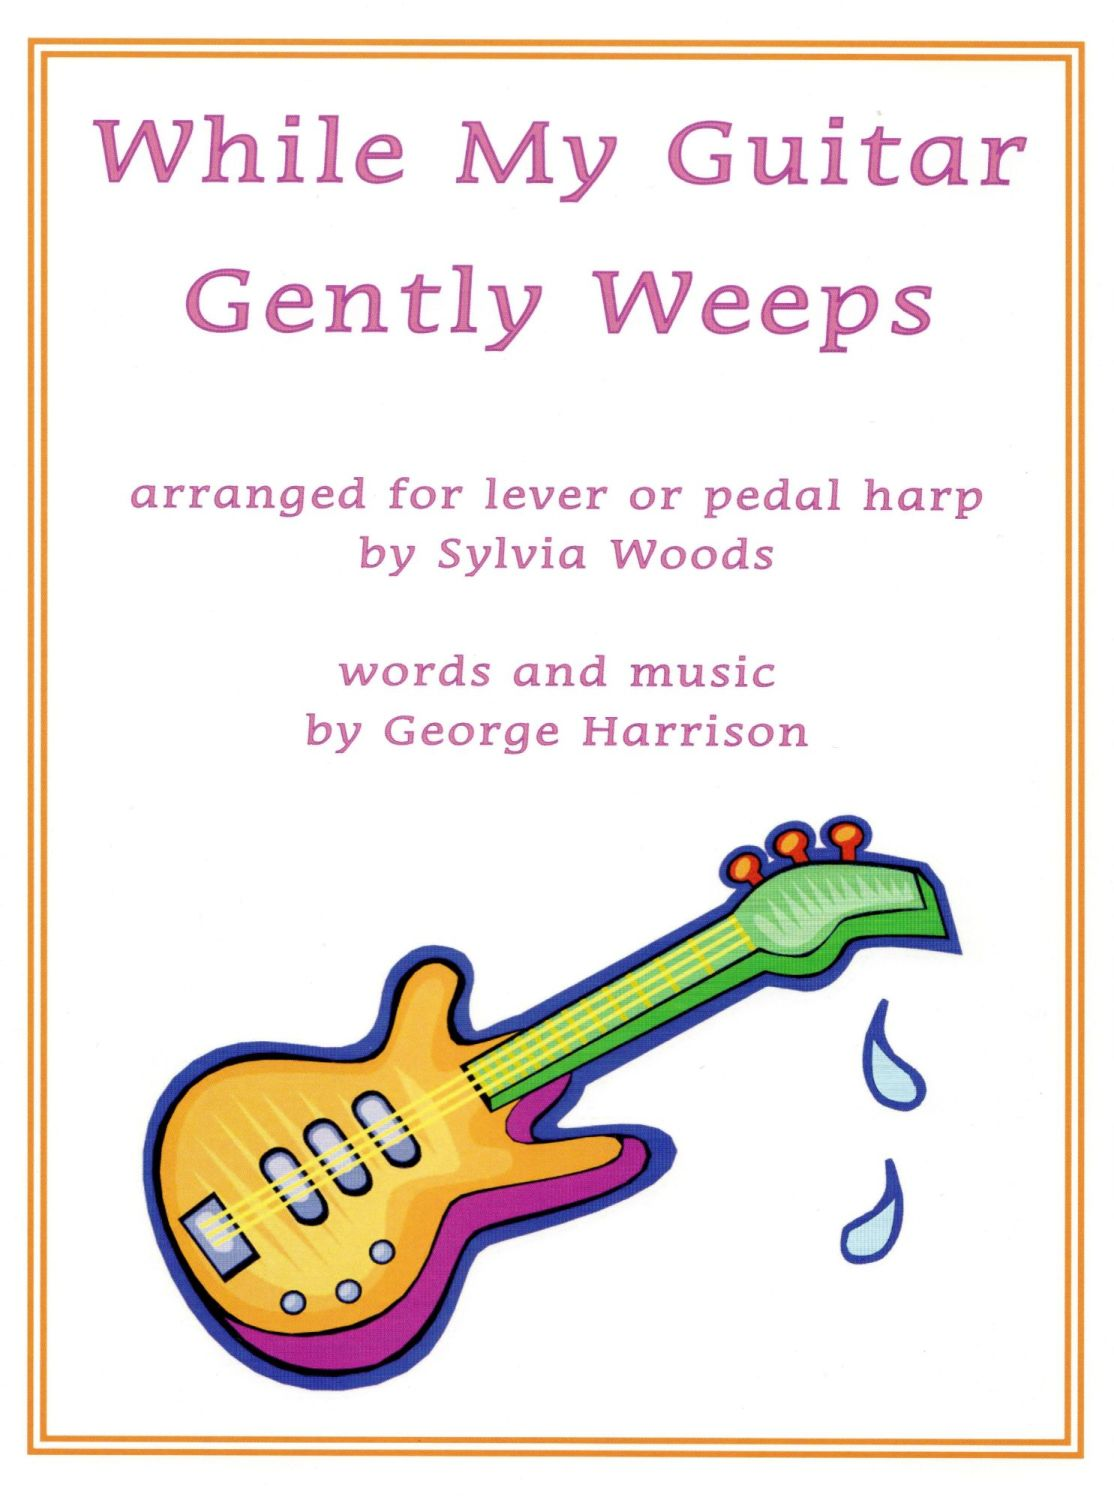 While My Guitar Gently Weeps - George Harrison